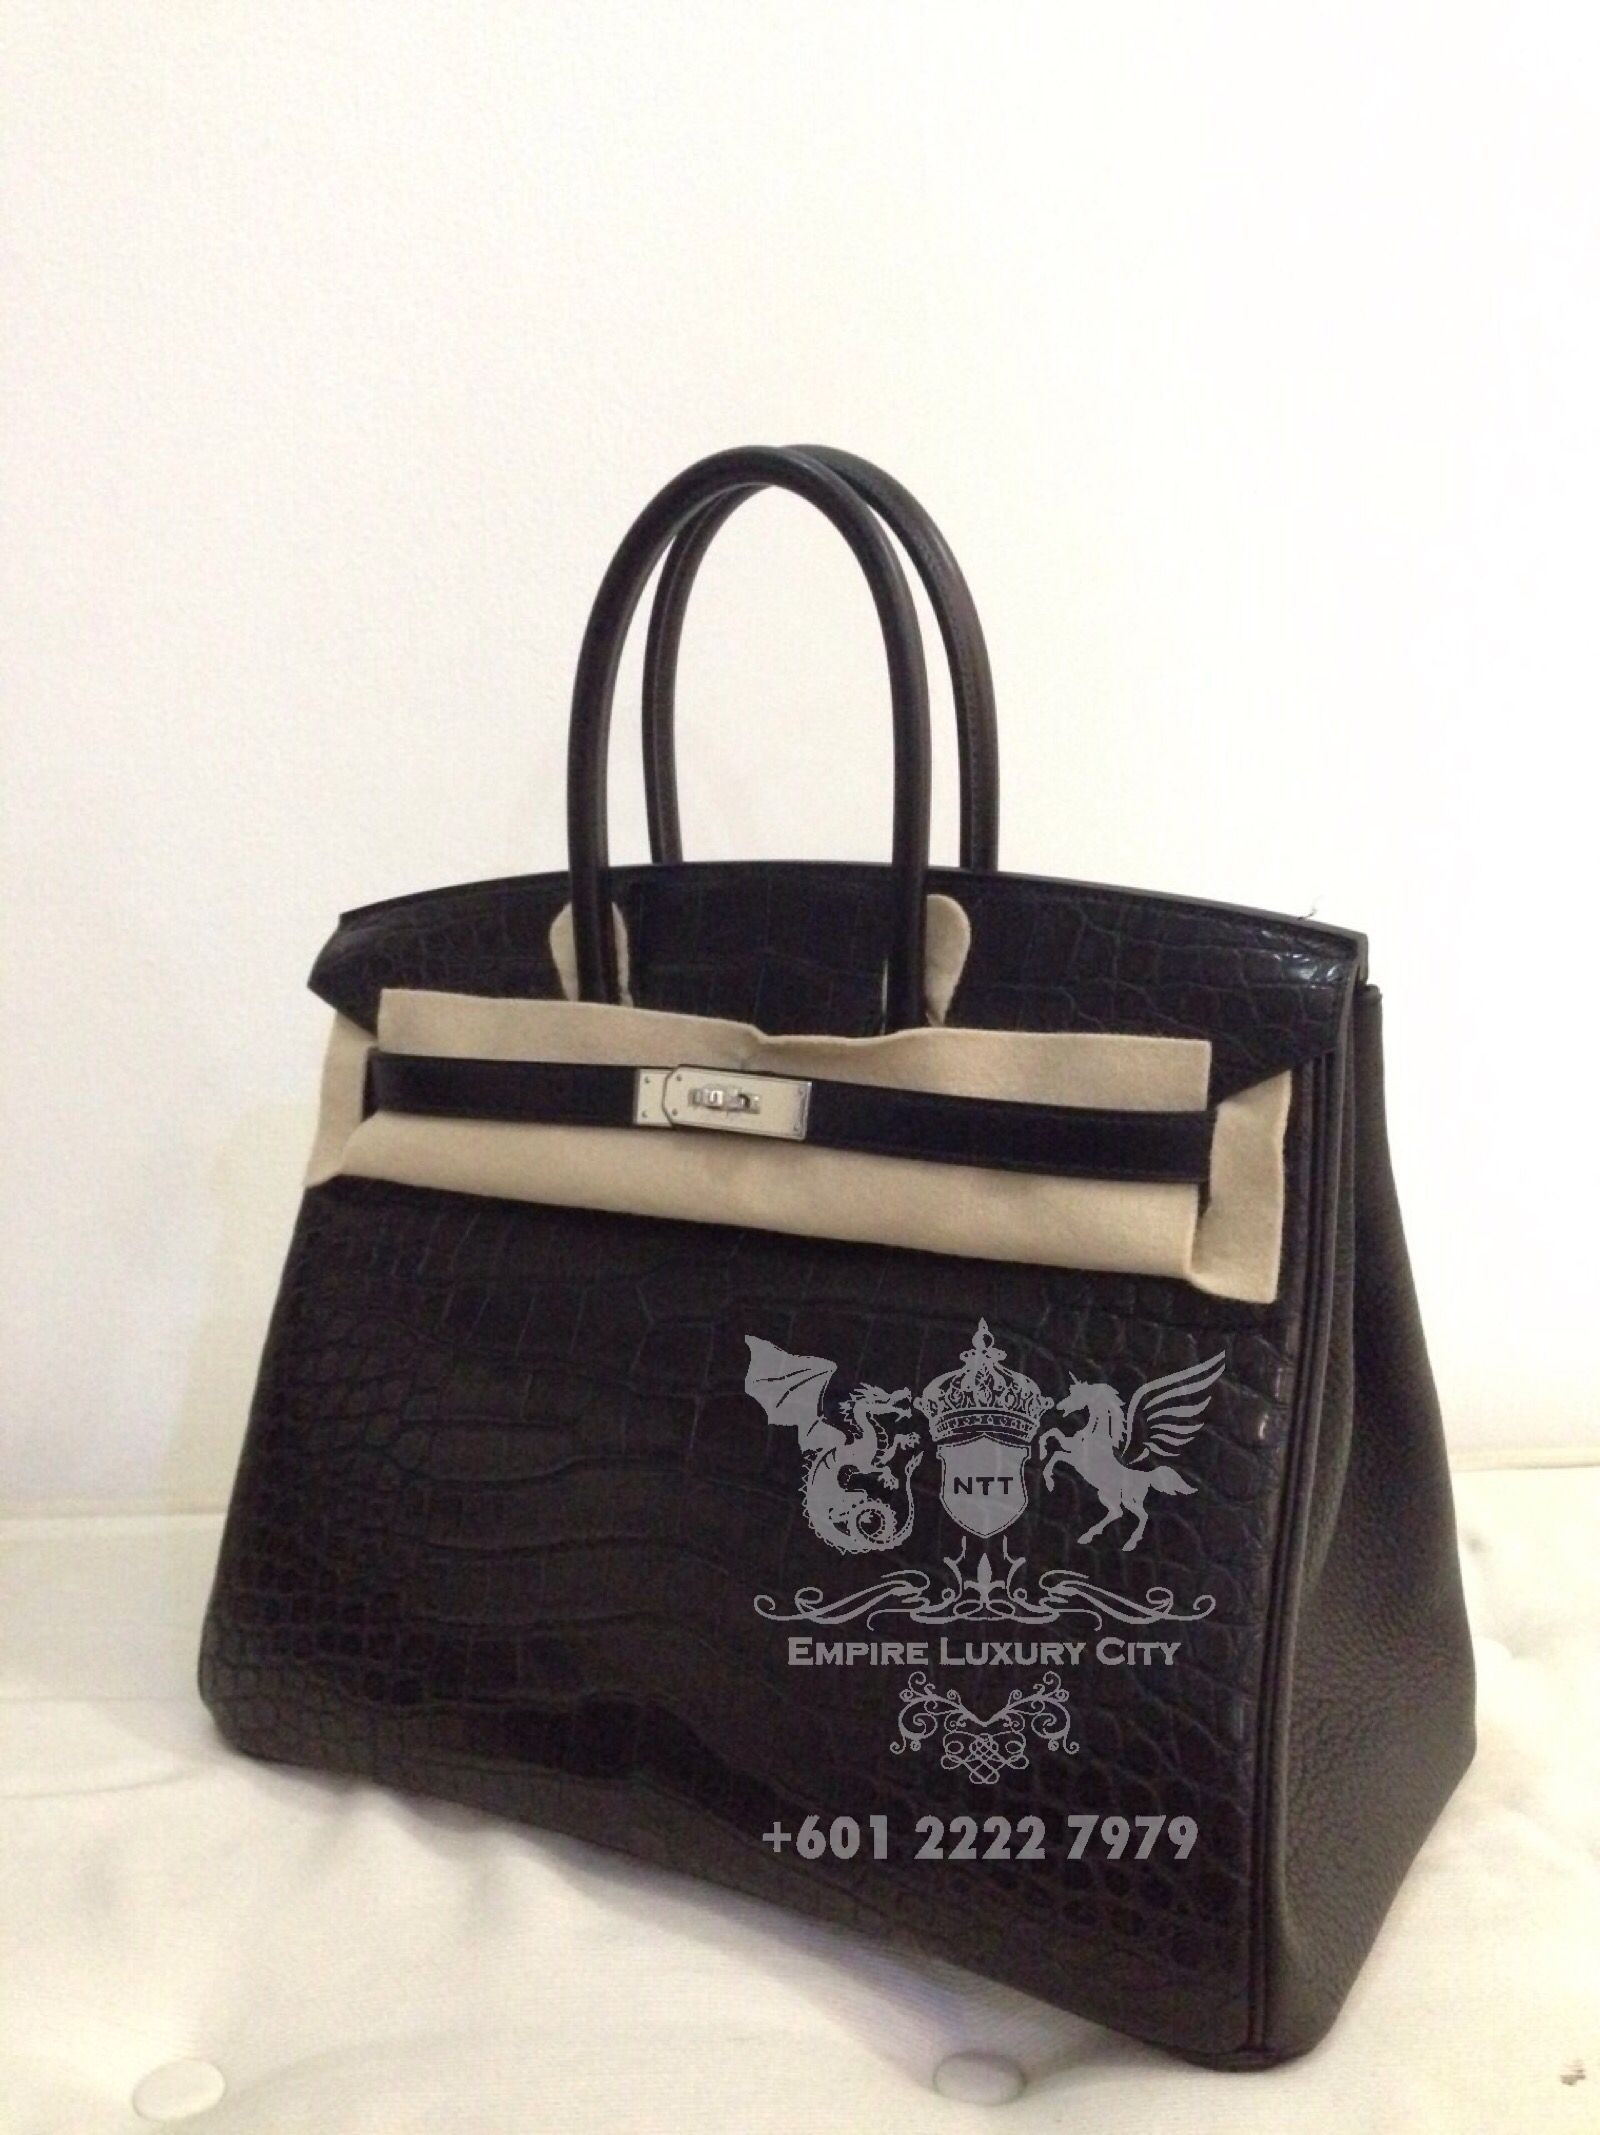 6b2d88588e1 ELC CROC DEAL 4 TODAY! NEW HERMES BIRKIN 35 CROC TRILEATHER CROCODILE  CLEMENCE BOX IN